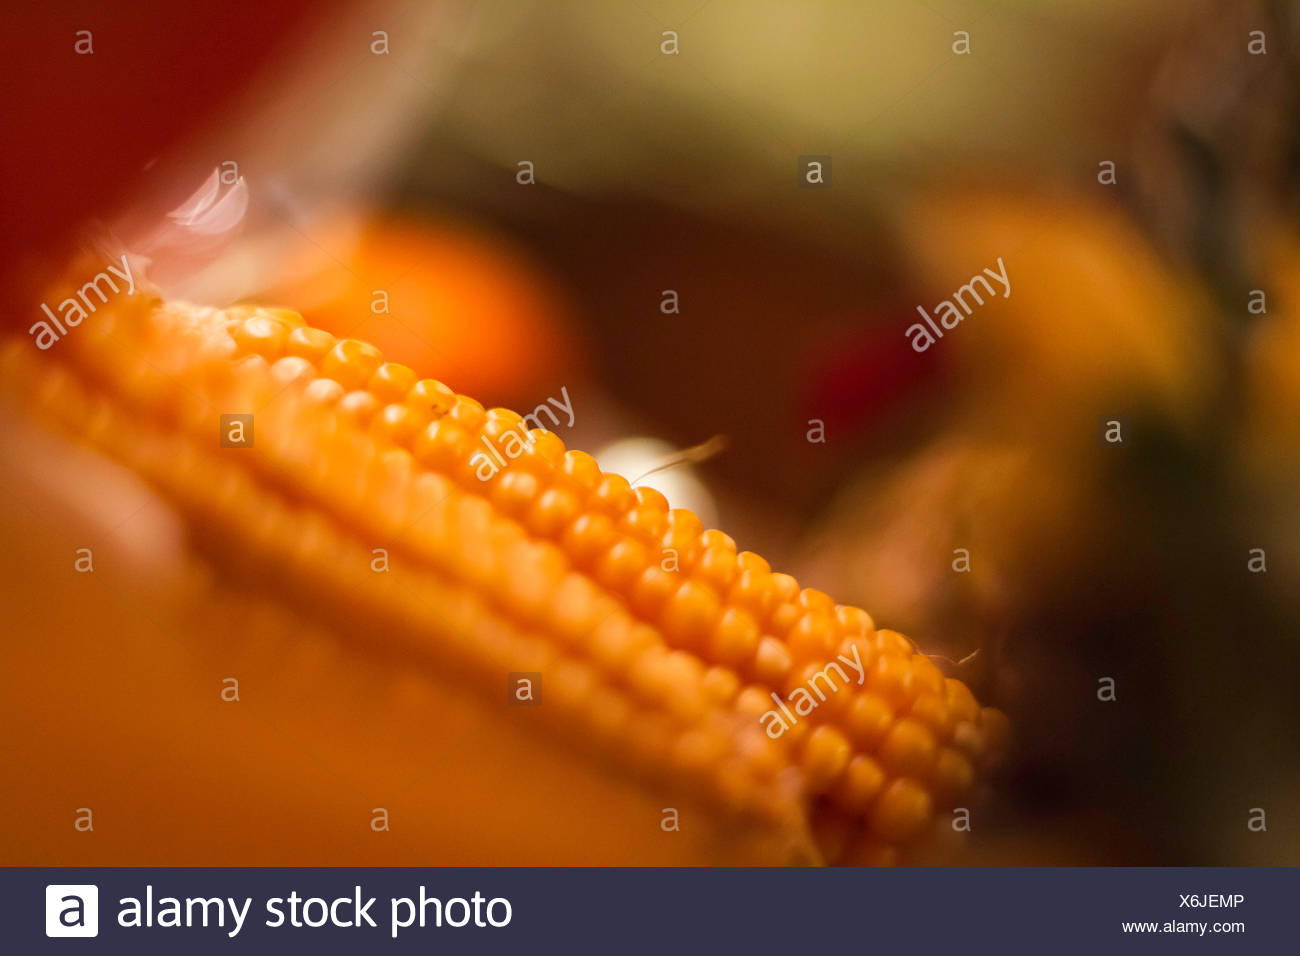 Close up of ears of corn - Stock Image